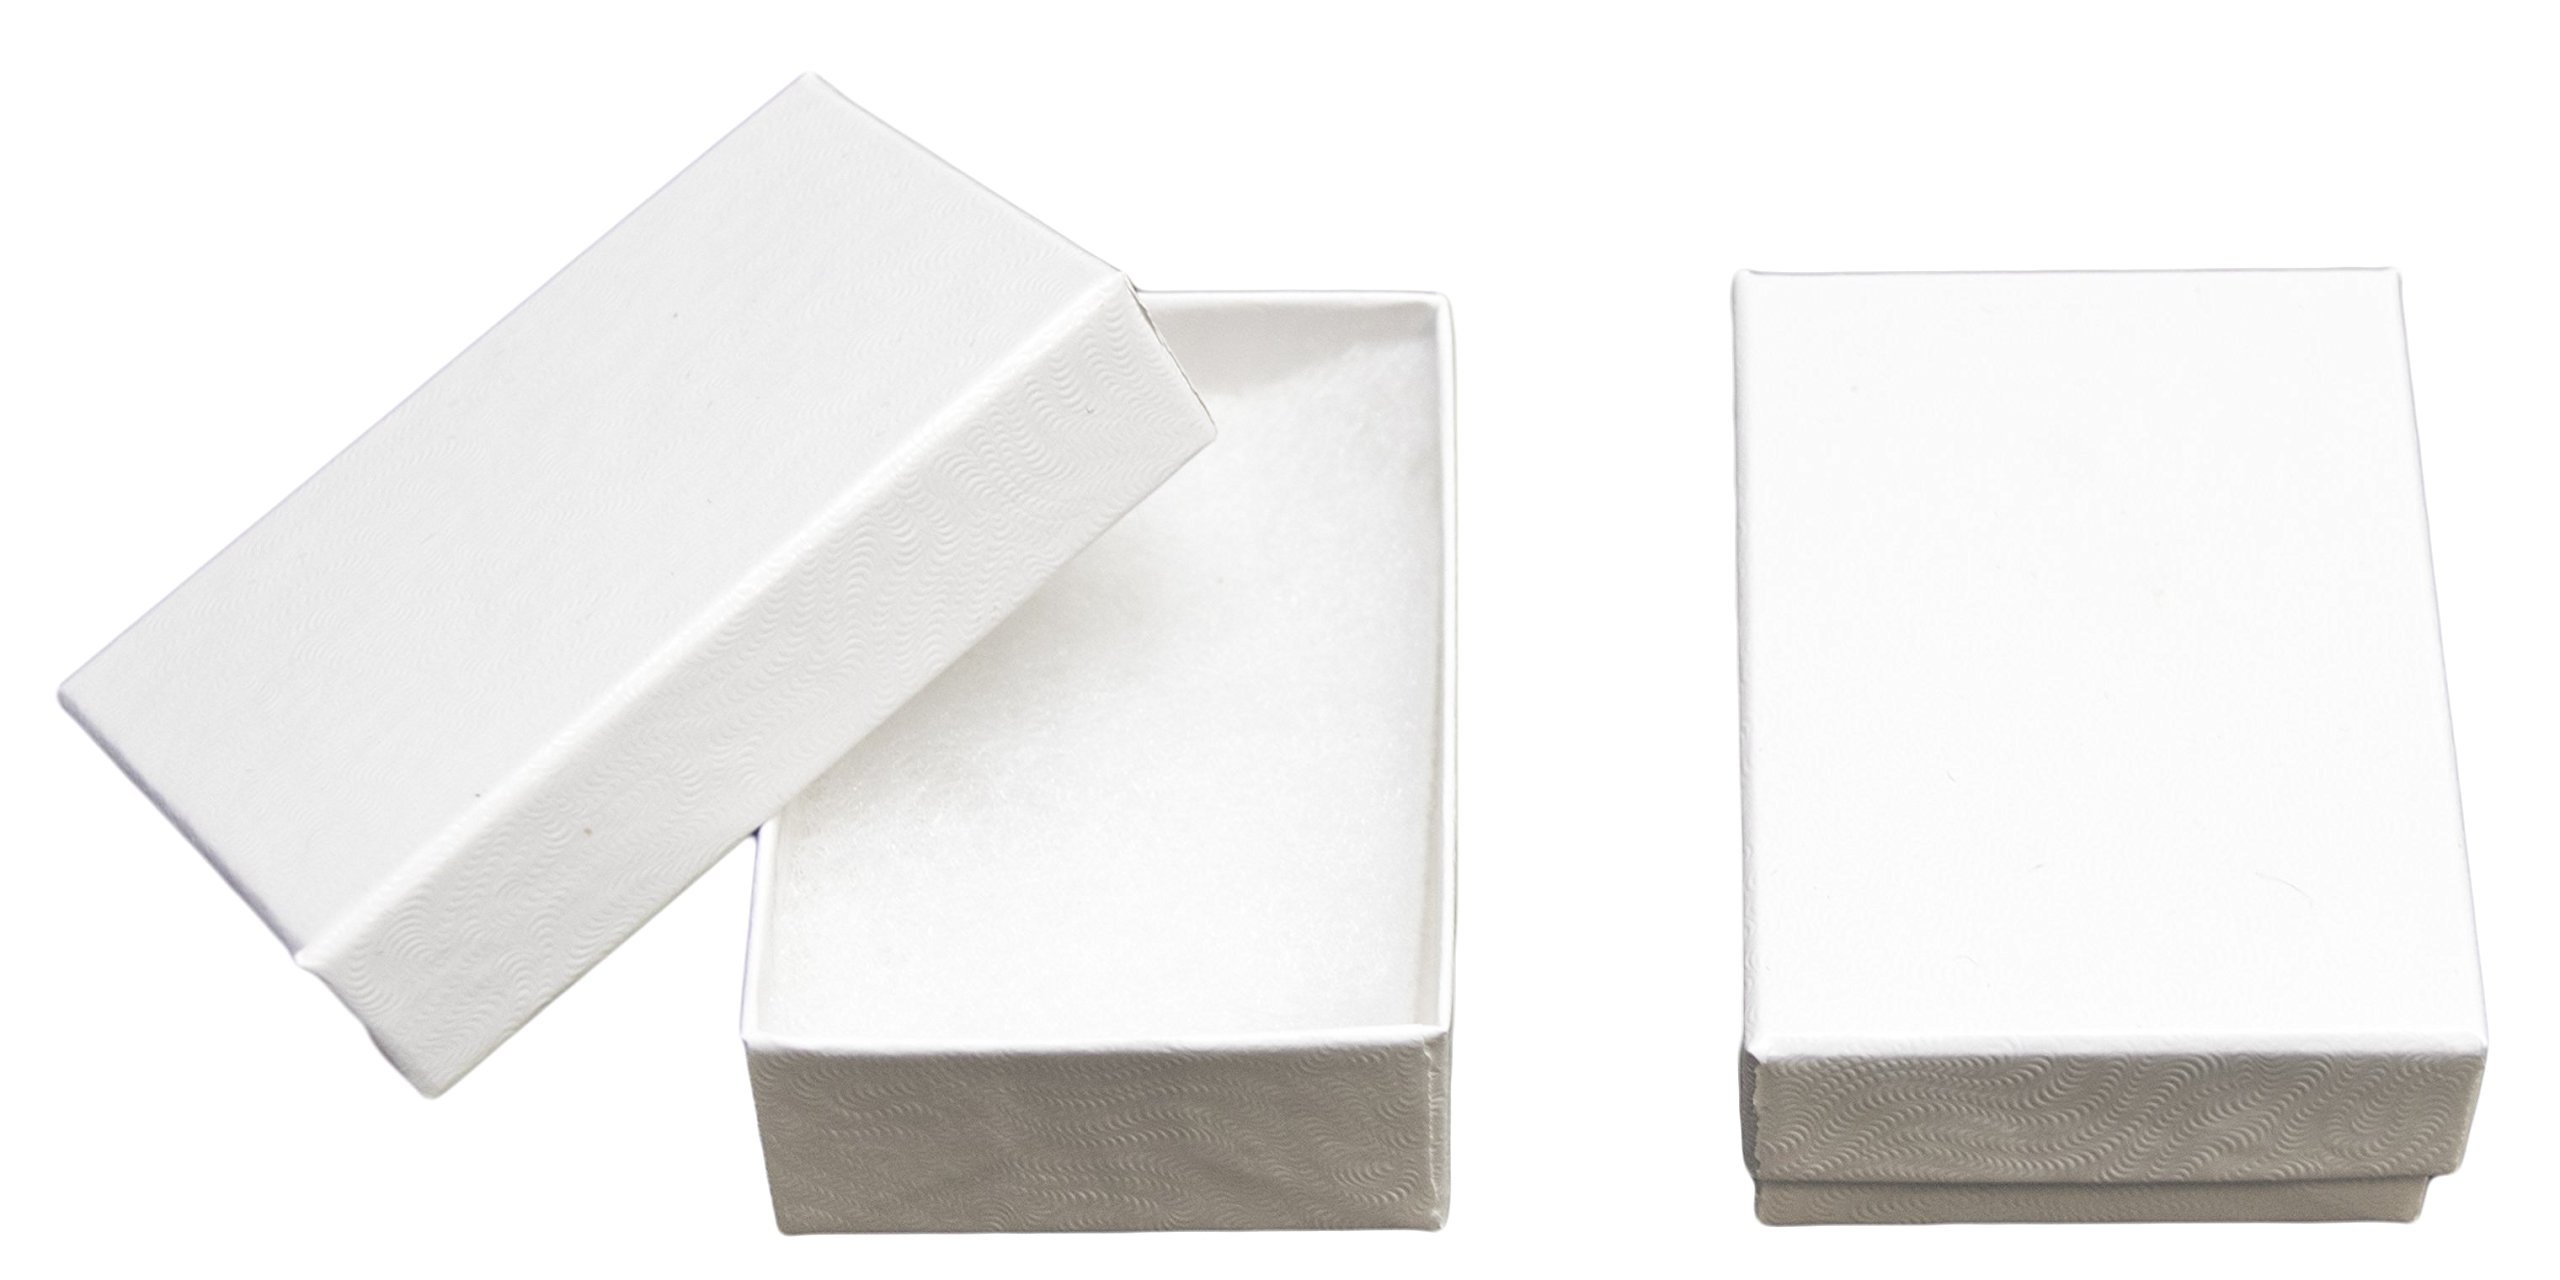 Novel Box MADE IN USA Jewelry Gift Box in White Swirl With Removable Cotton Pad 2.5X1.8X1'' (Pack of 25) + NB Cleaning Cloth by Novel Box (Image #1)